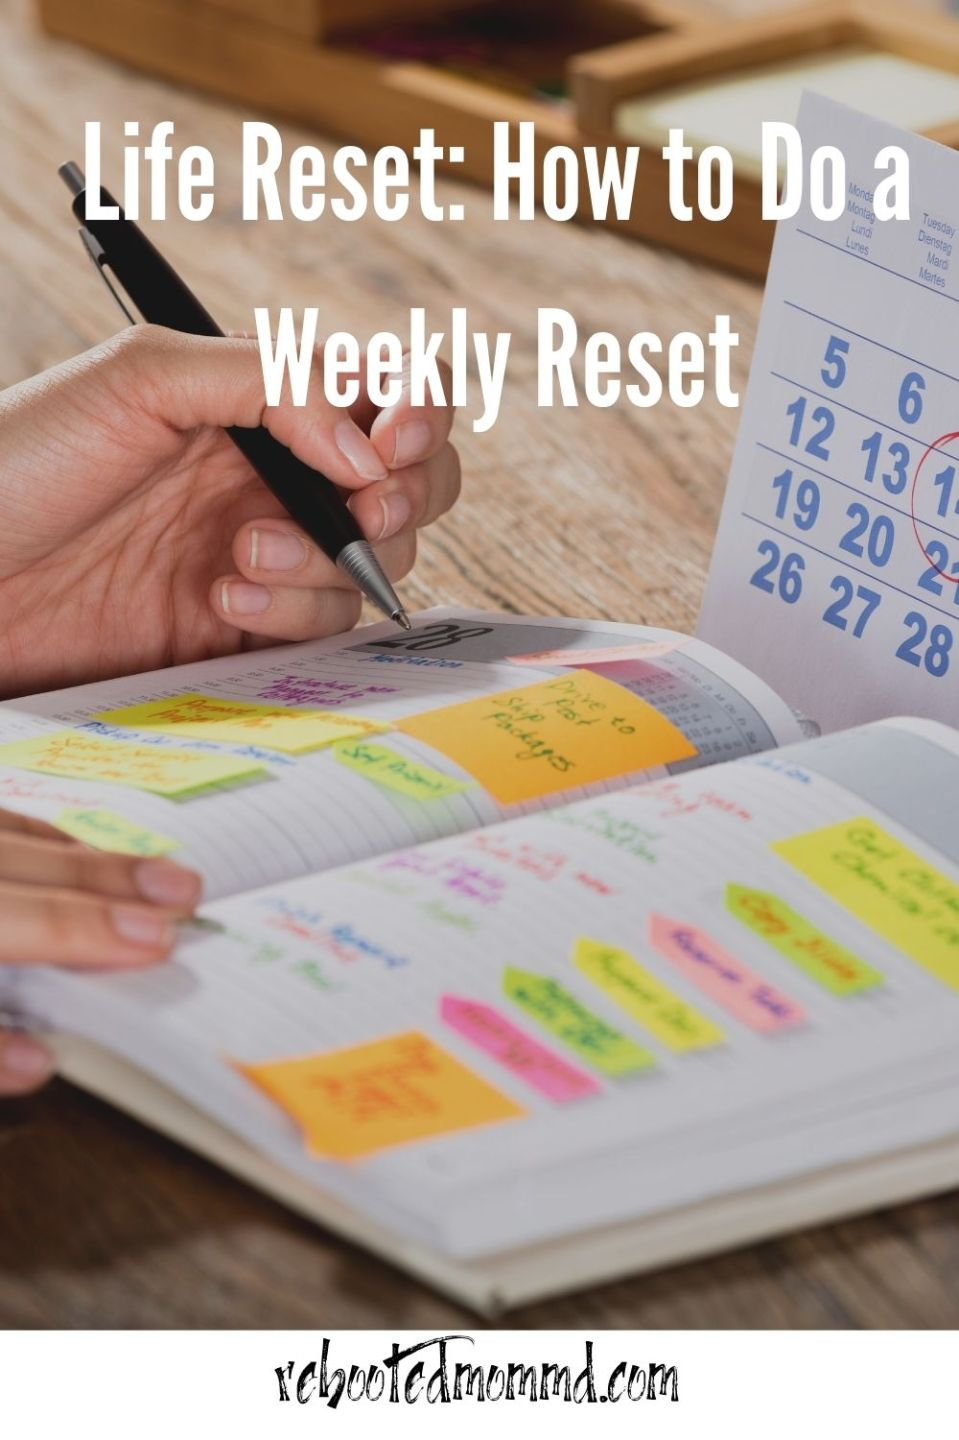 Tips on How to do a Weekly Reset